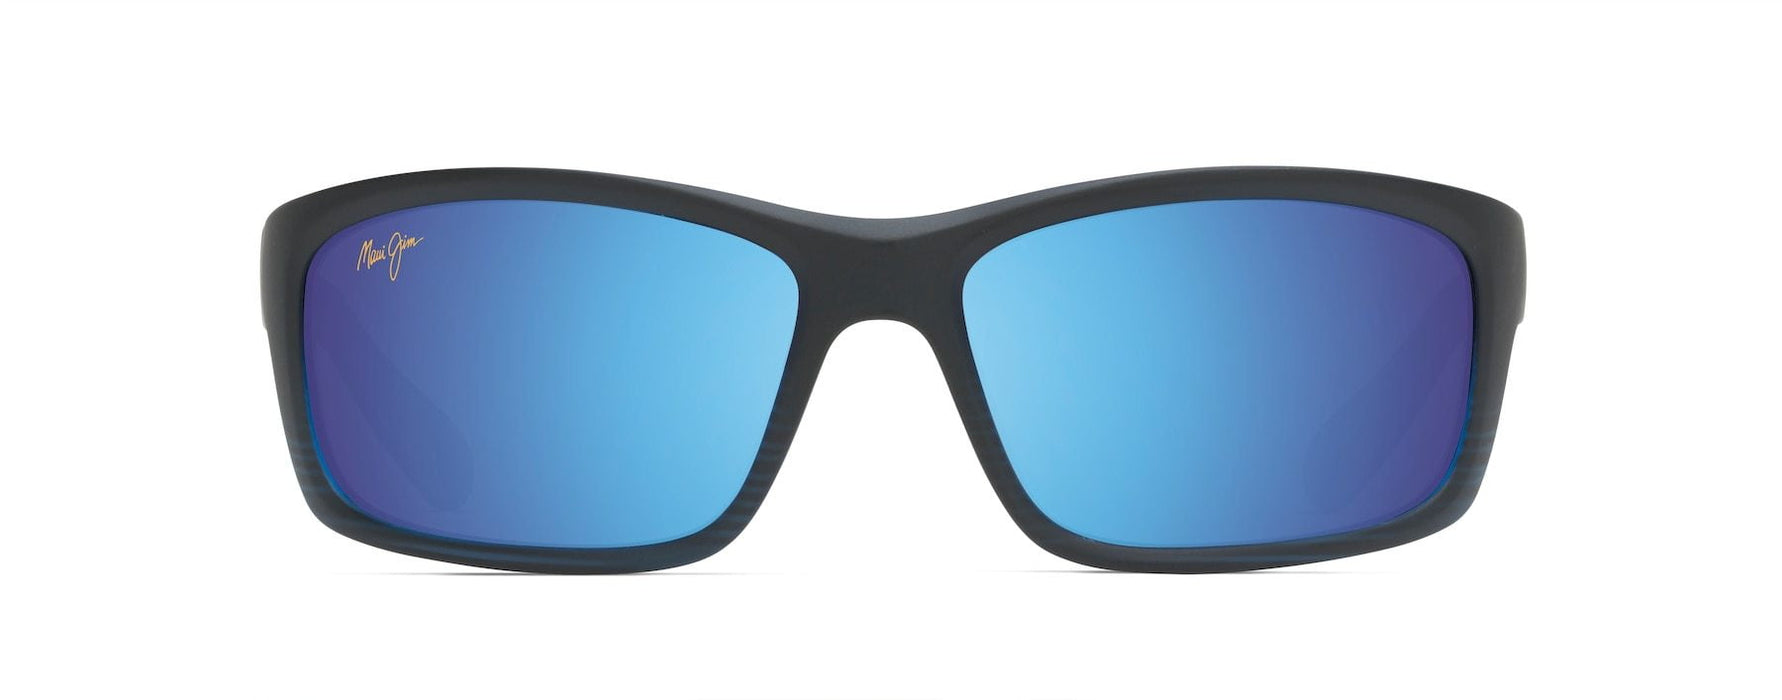 MyMaui Kanaio Coast MM766-017 Sunglasses